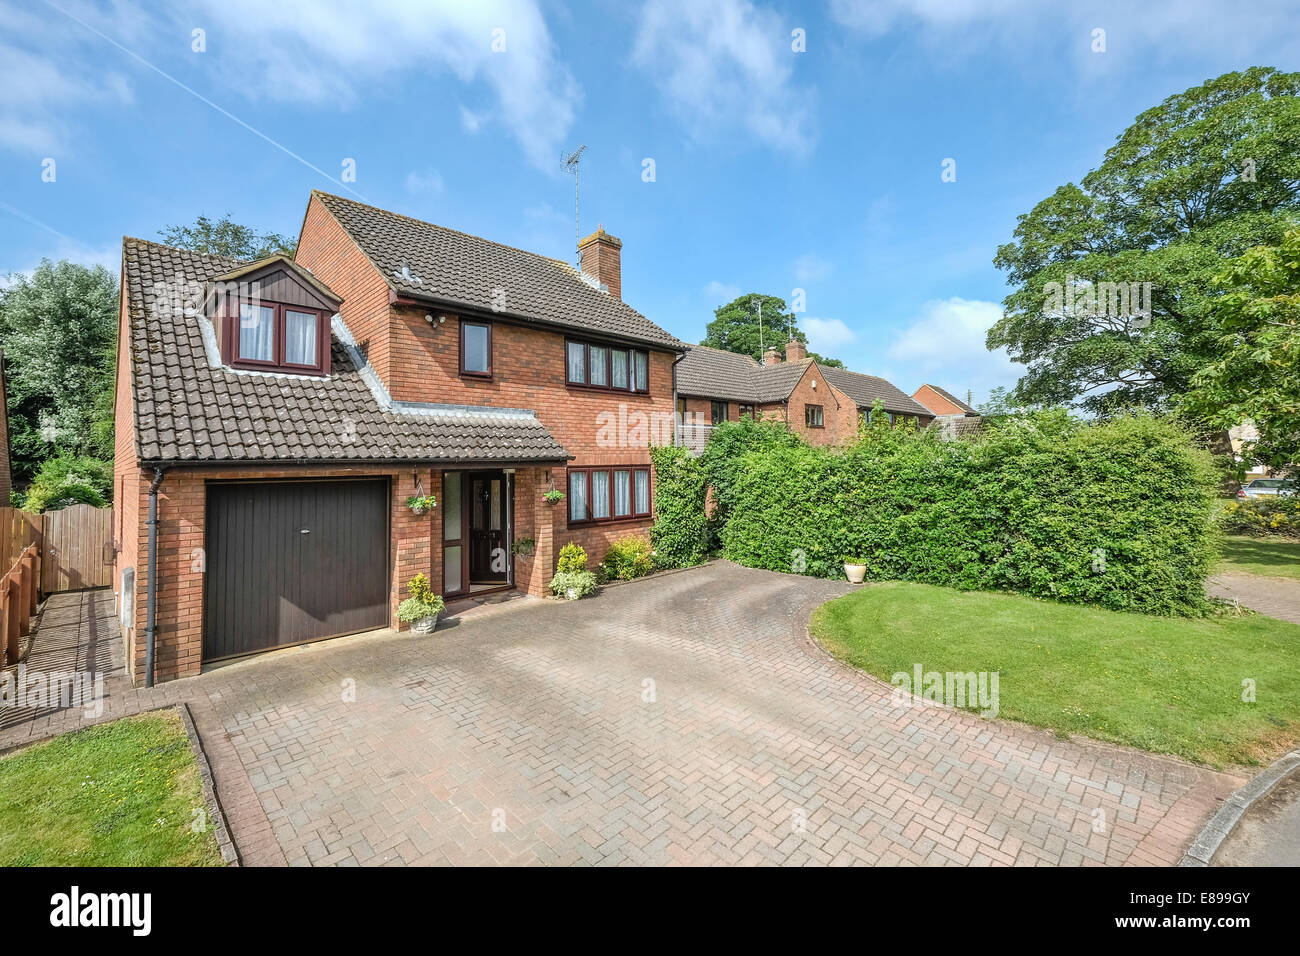 A Typical Contemporary British Red Brick Detached Family